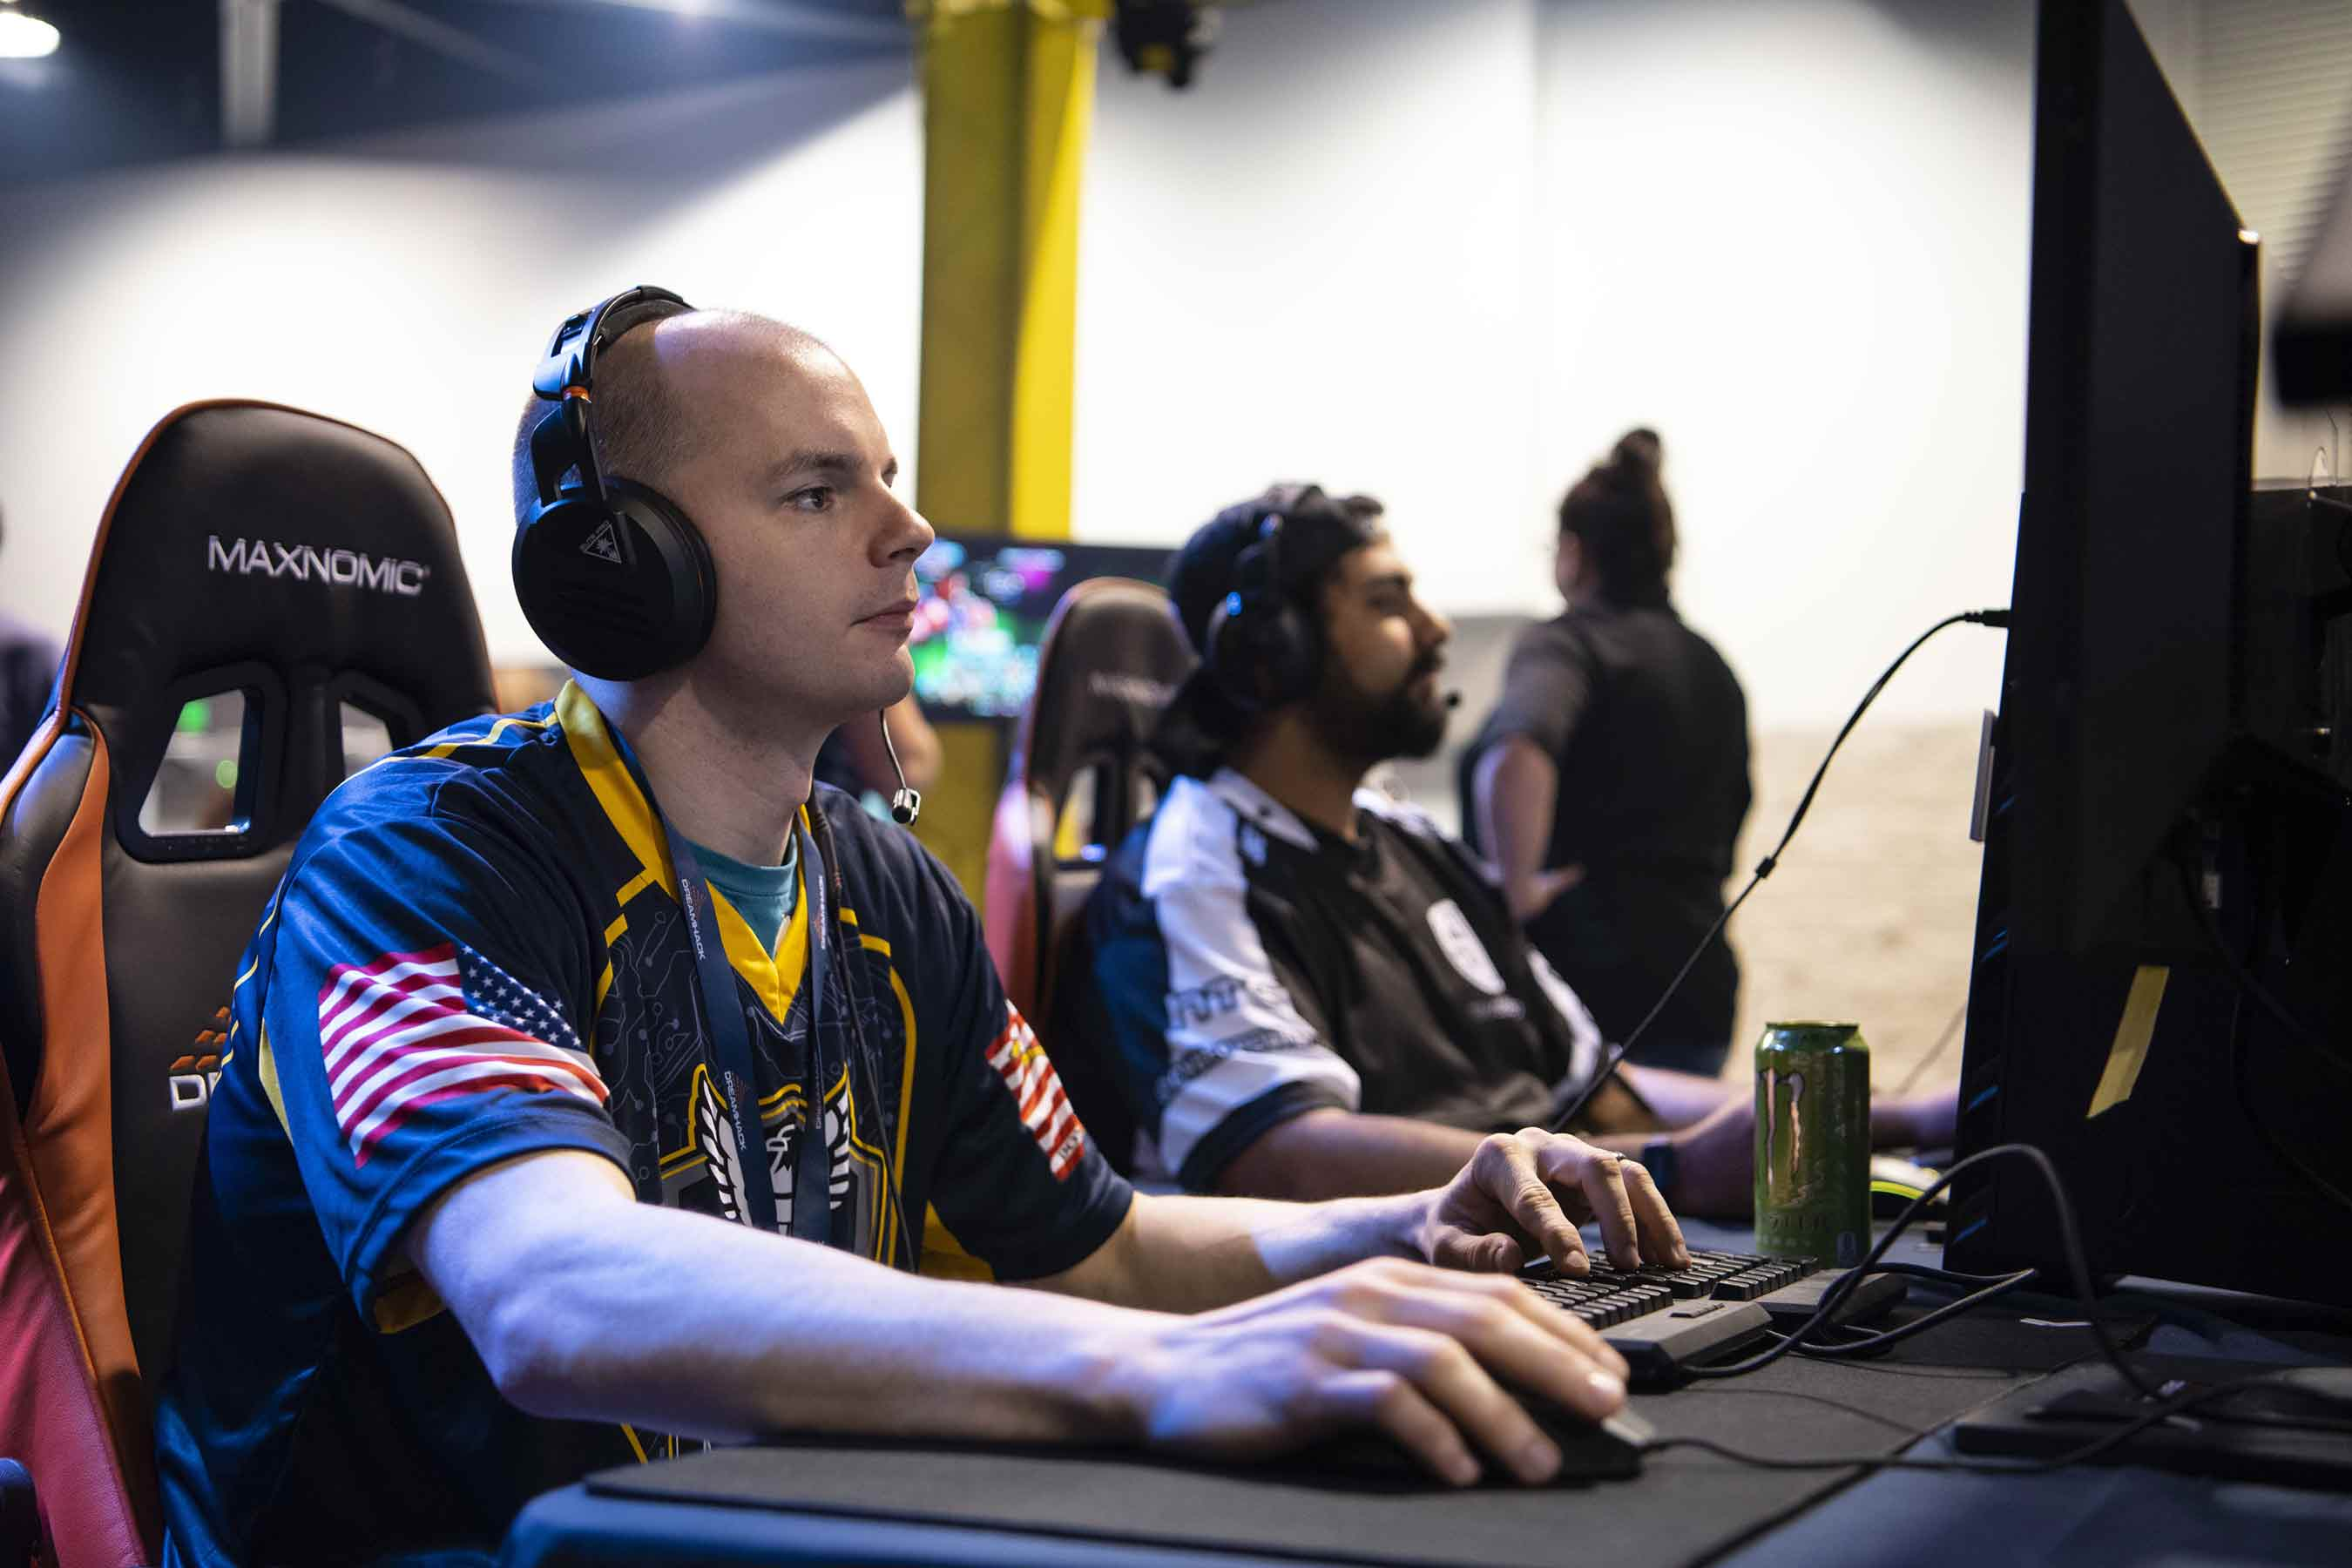 Navy Esports Team to Resume Streaming on Twitch After Trolling Caused Weeklong Hiatus